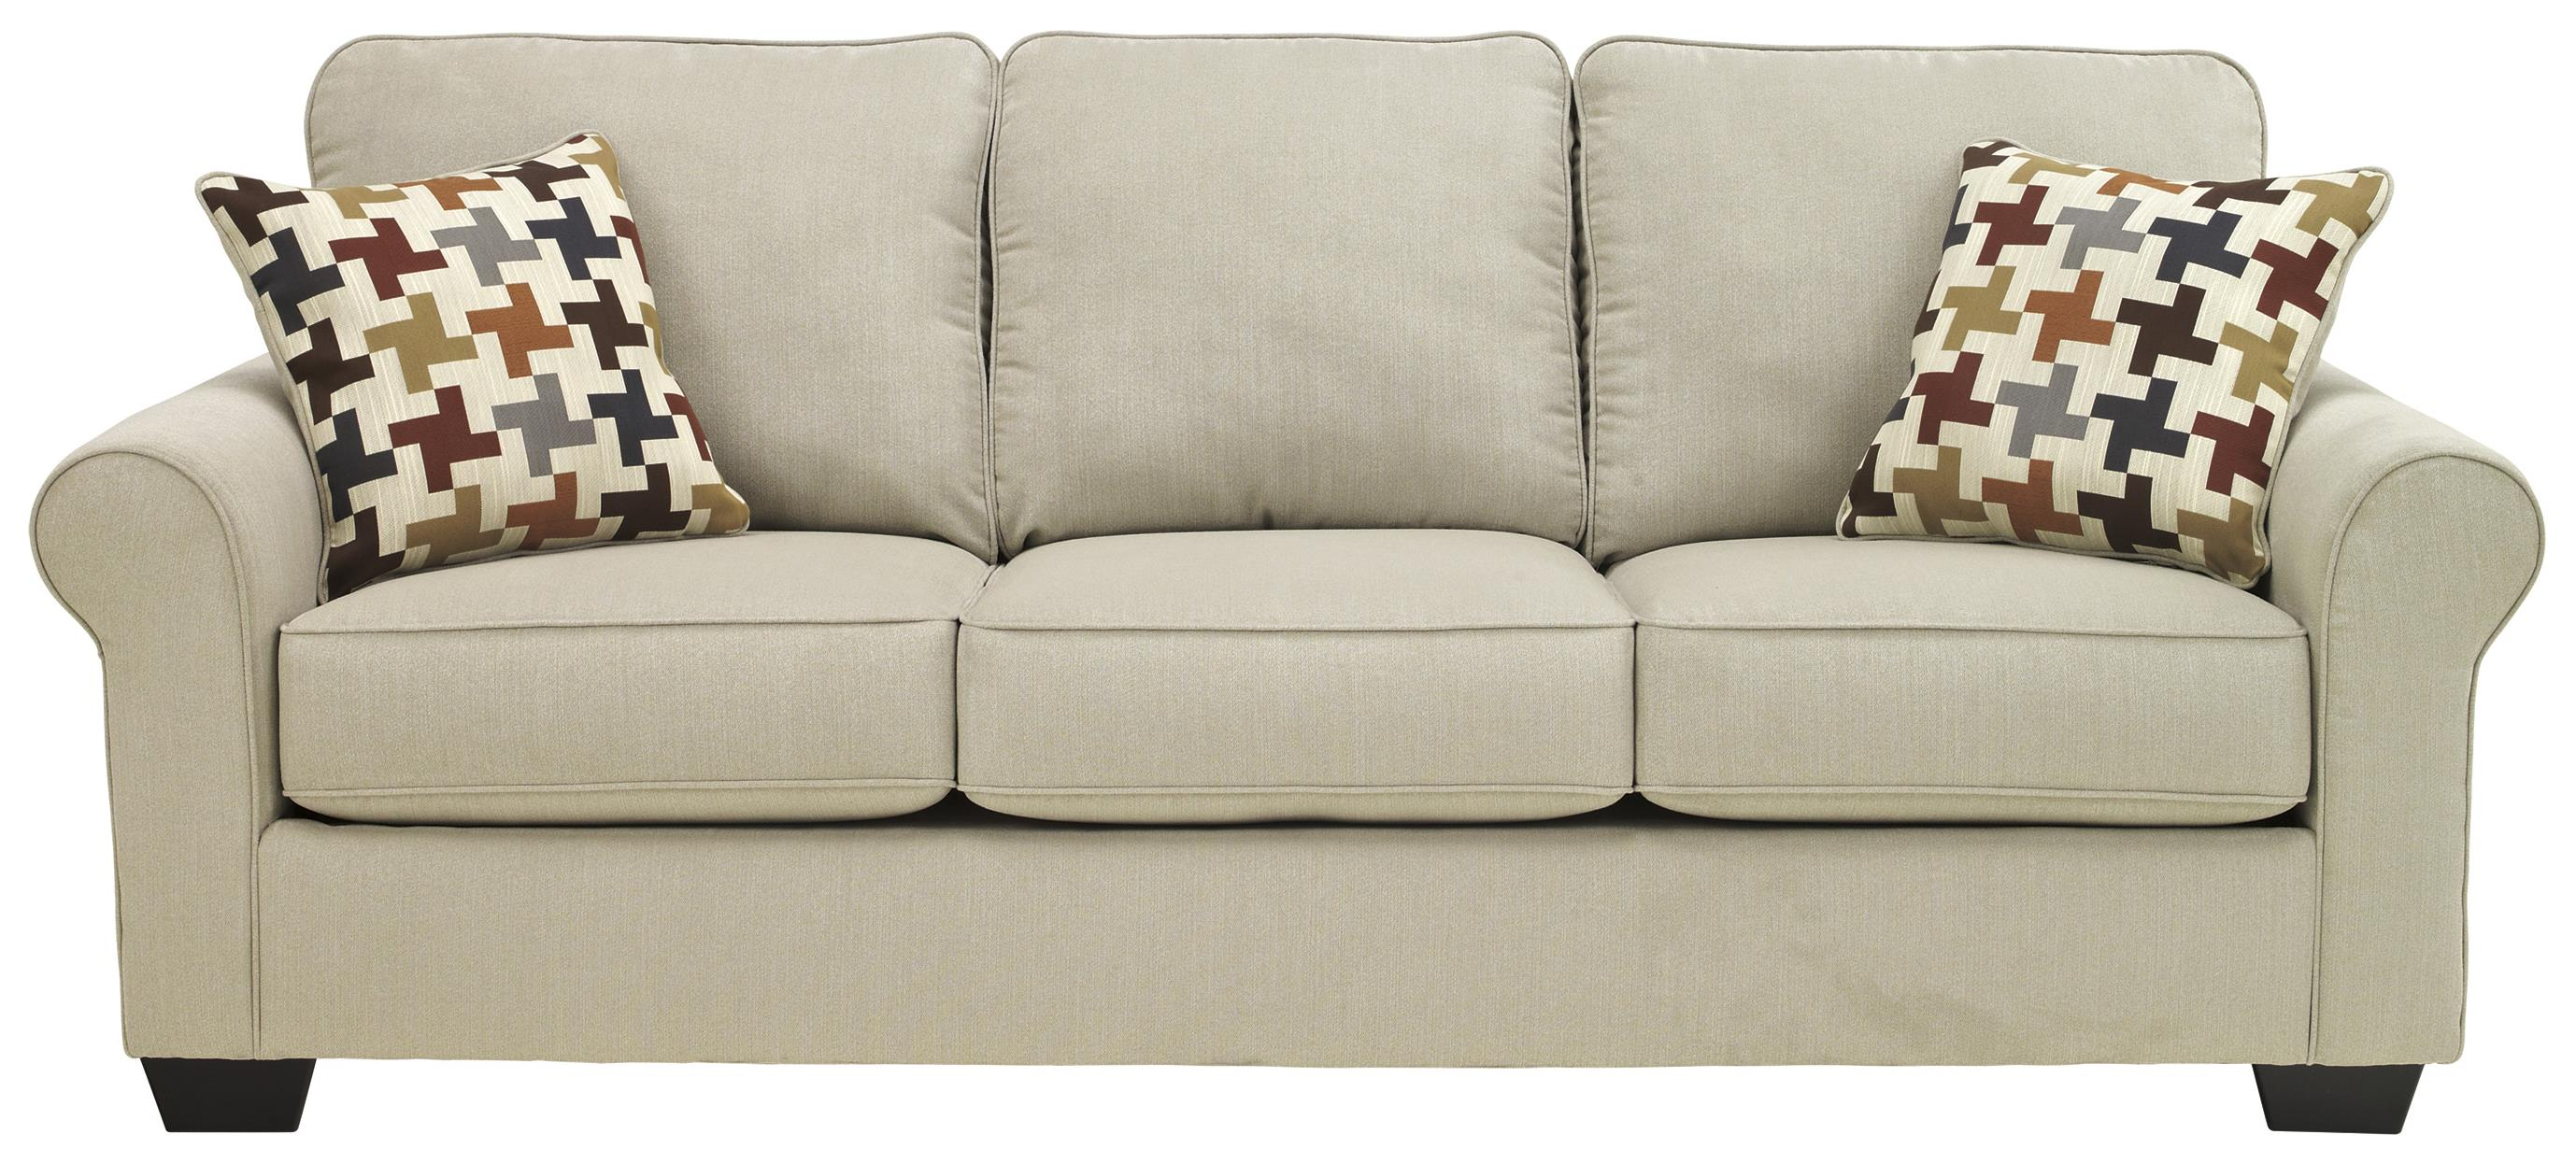 Ashley Furniture Caci Queen Sofa Sleeper - Item Number: 8820239